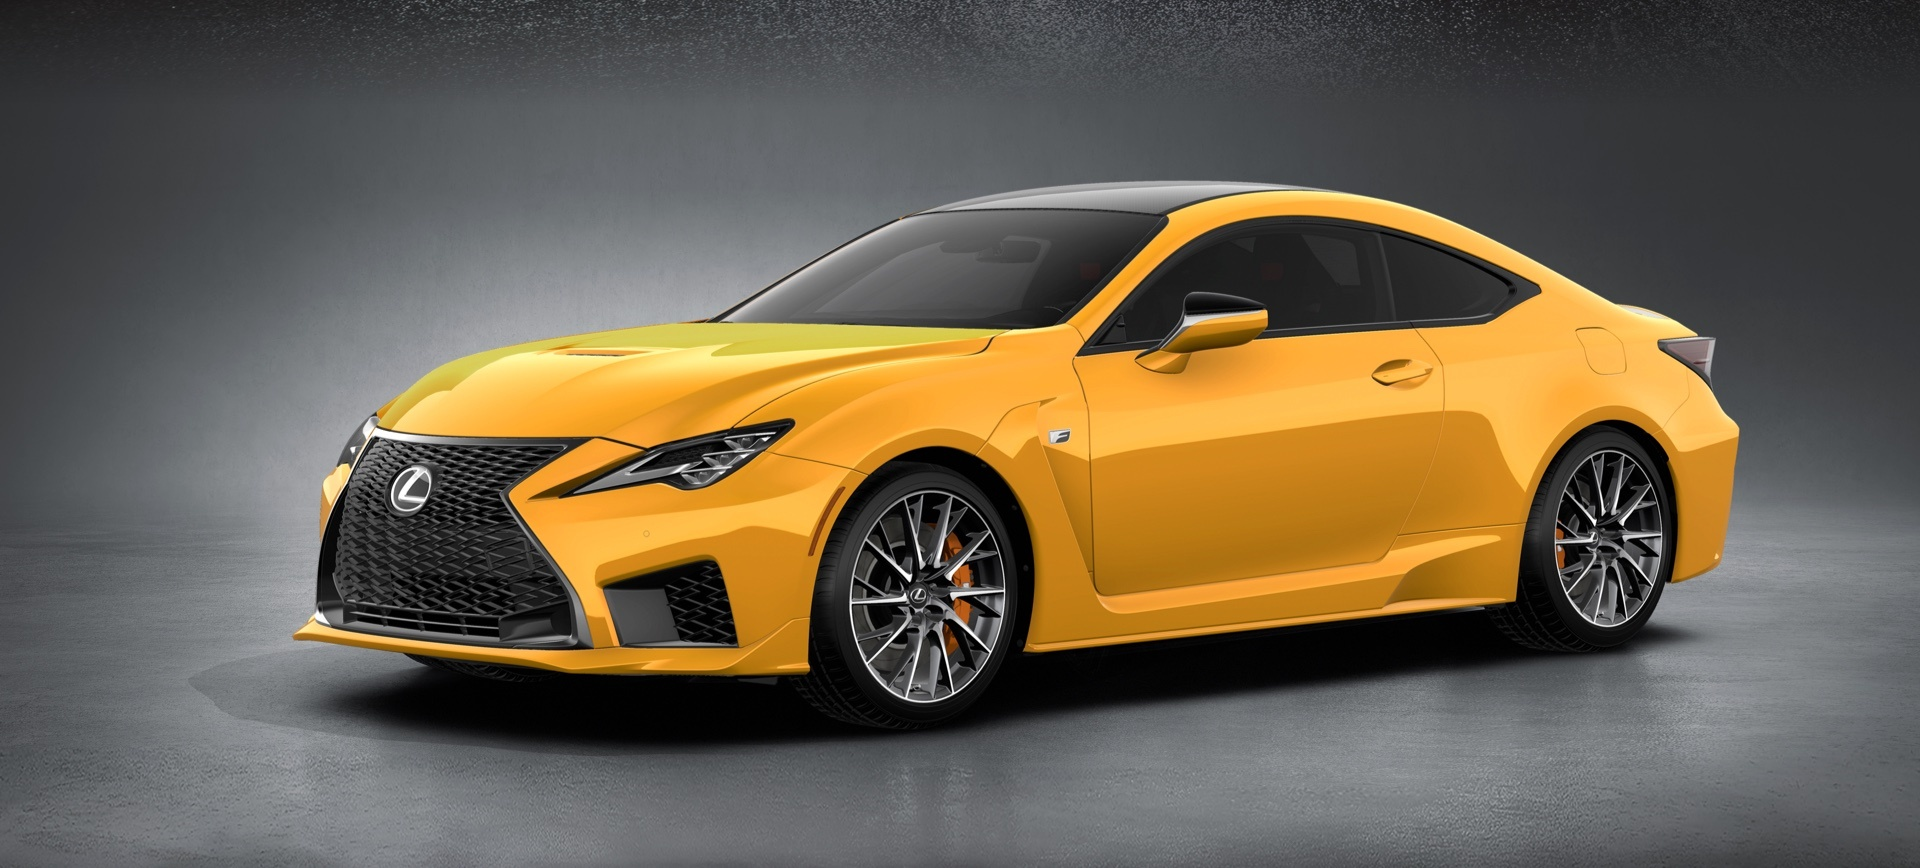 lexus-design-2020-rcf-flare-yellow-performance-edition-x